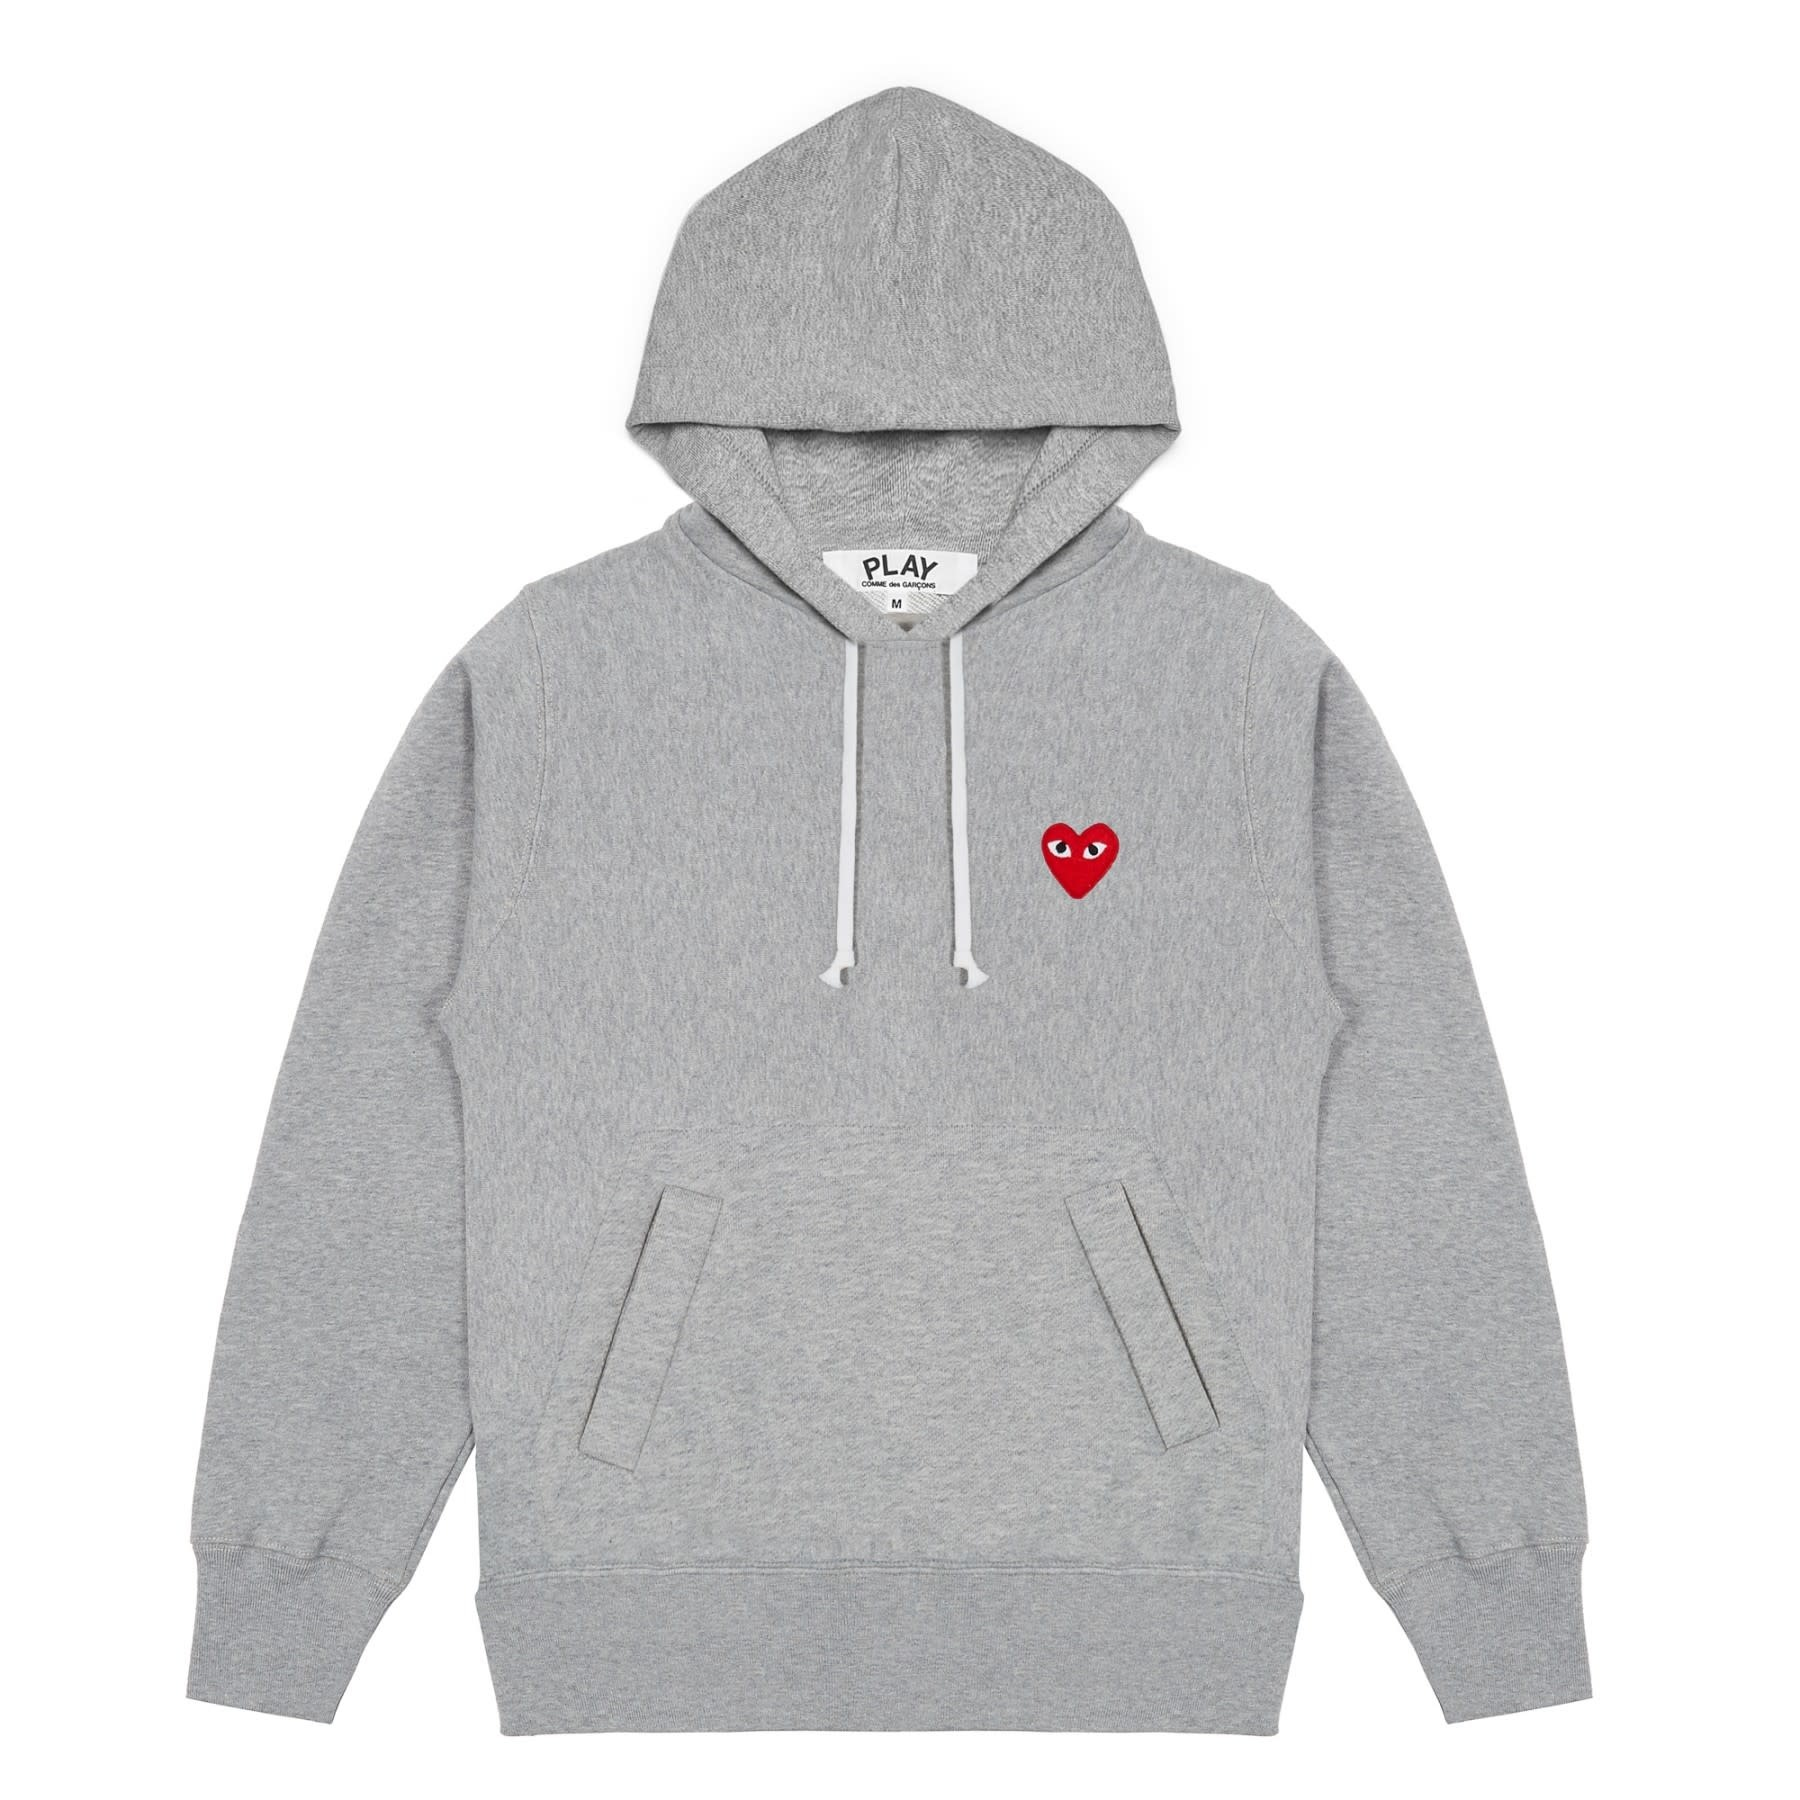 COMME des GARÇONS PLAY Red Heart Pull-over Sweatshirt in Heather Grey